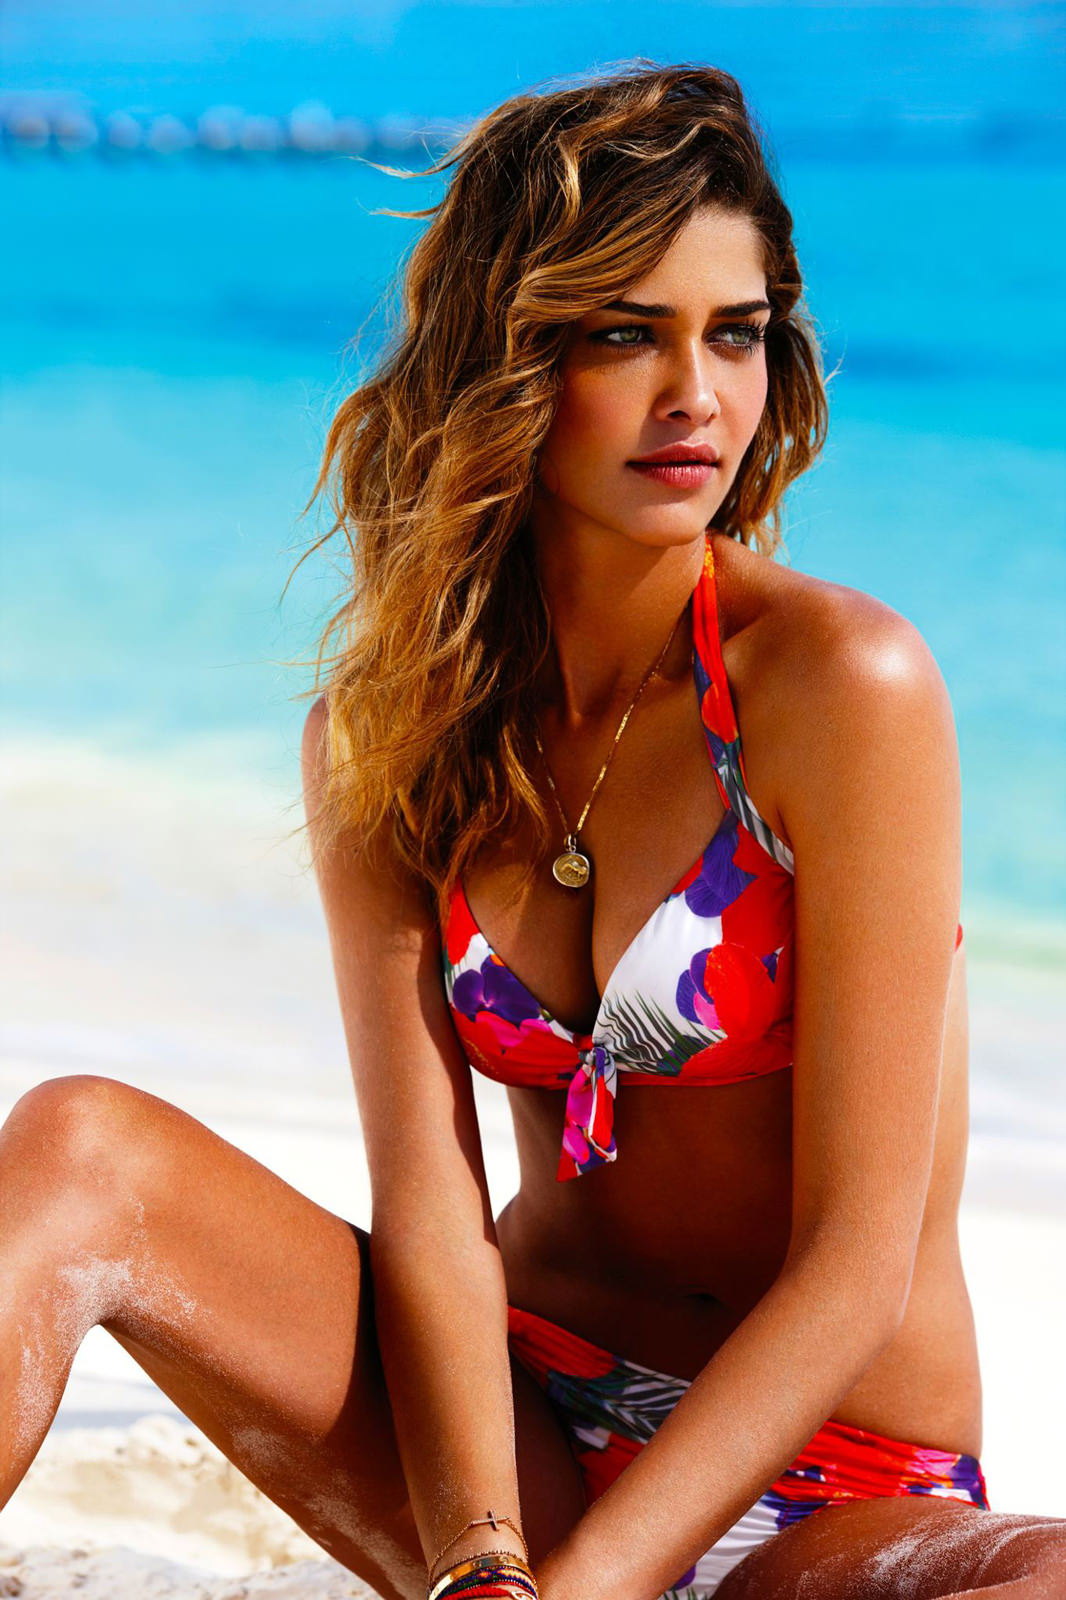 Ana Beatriz Barros Photo Gallery